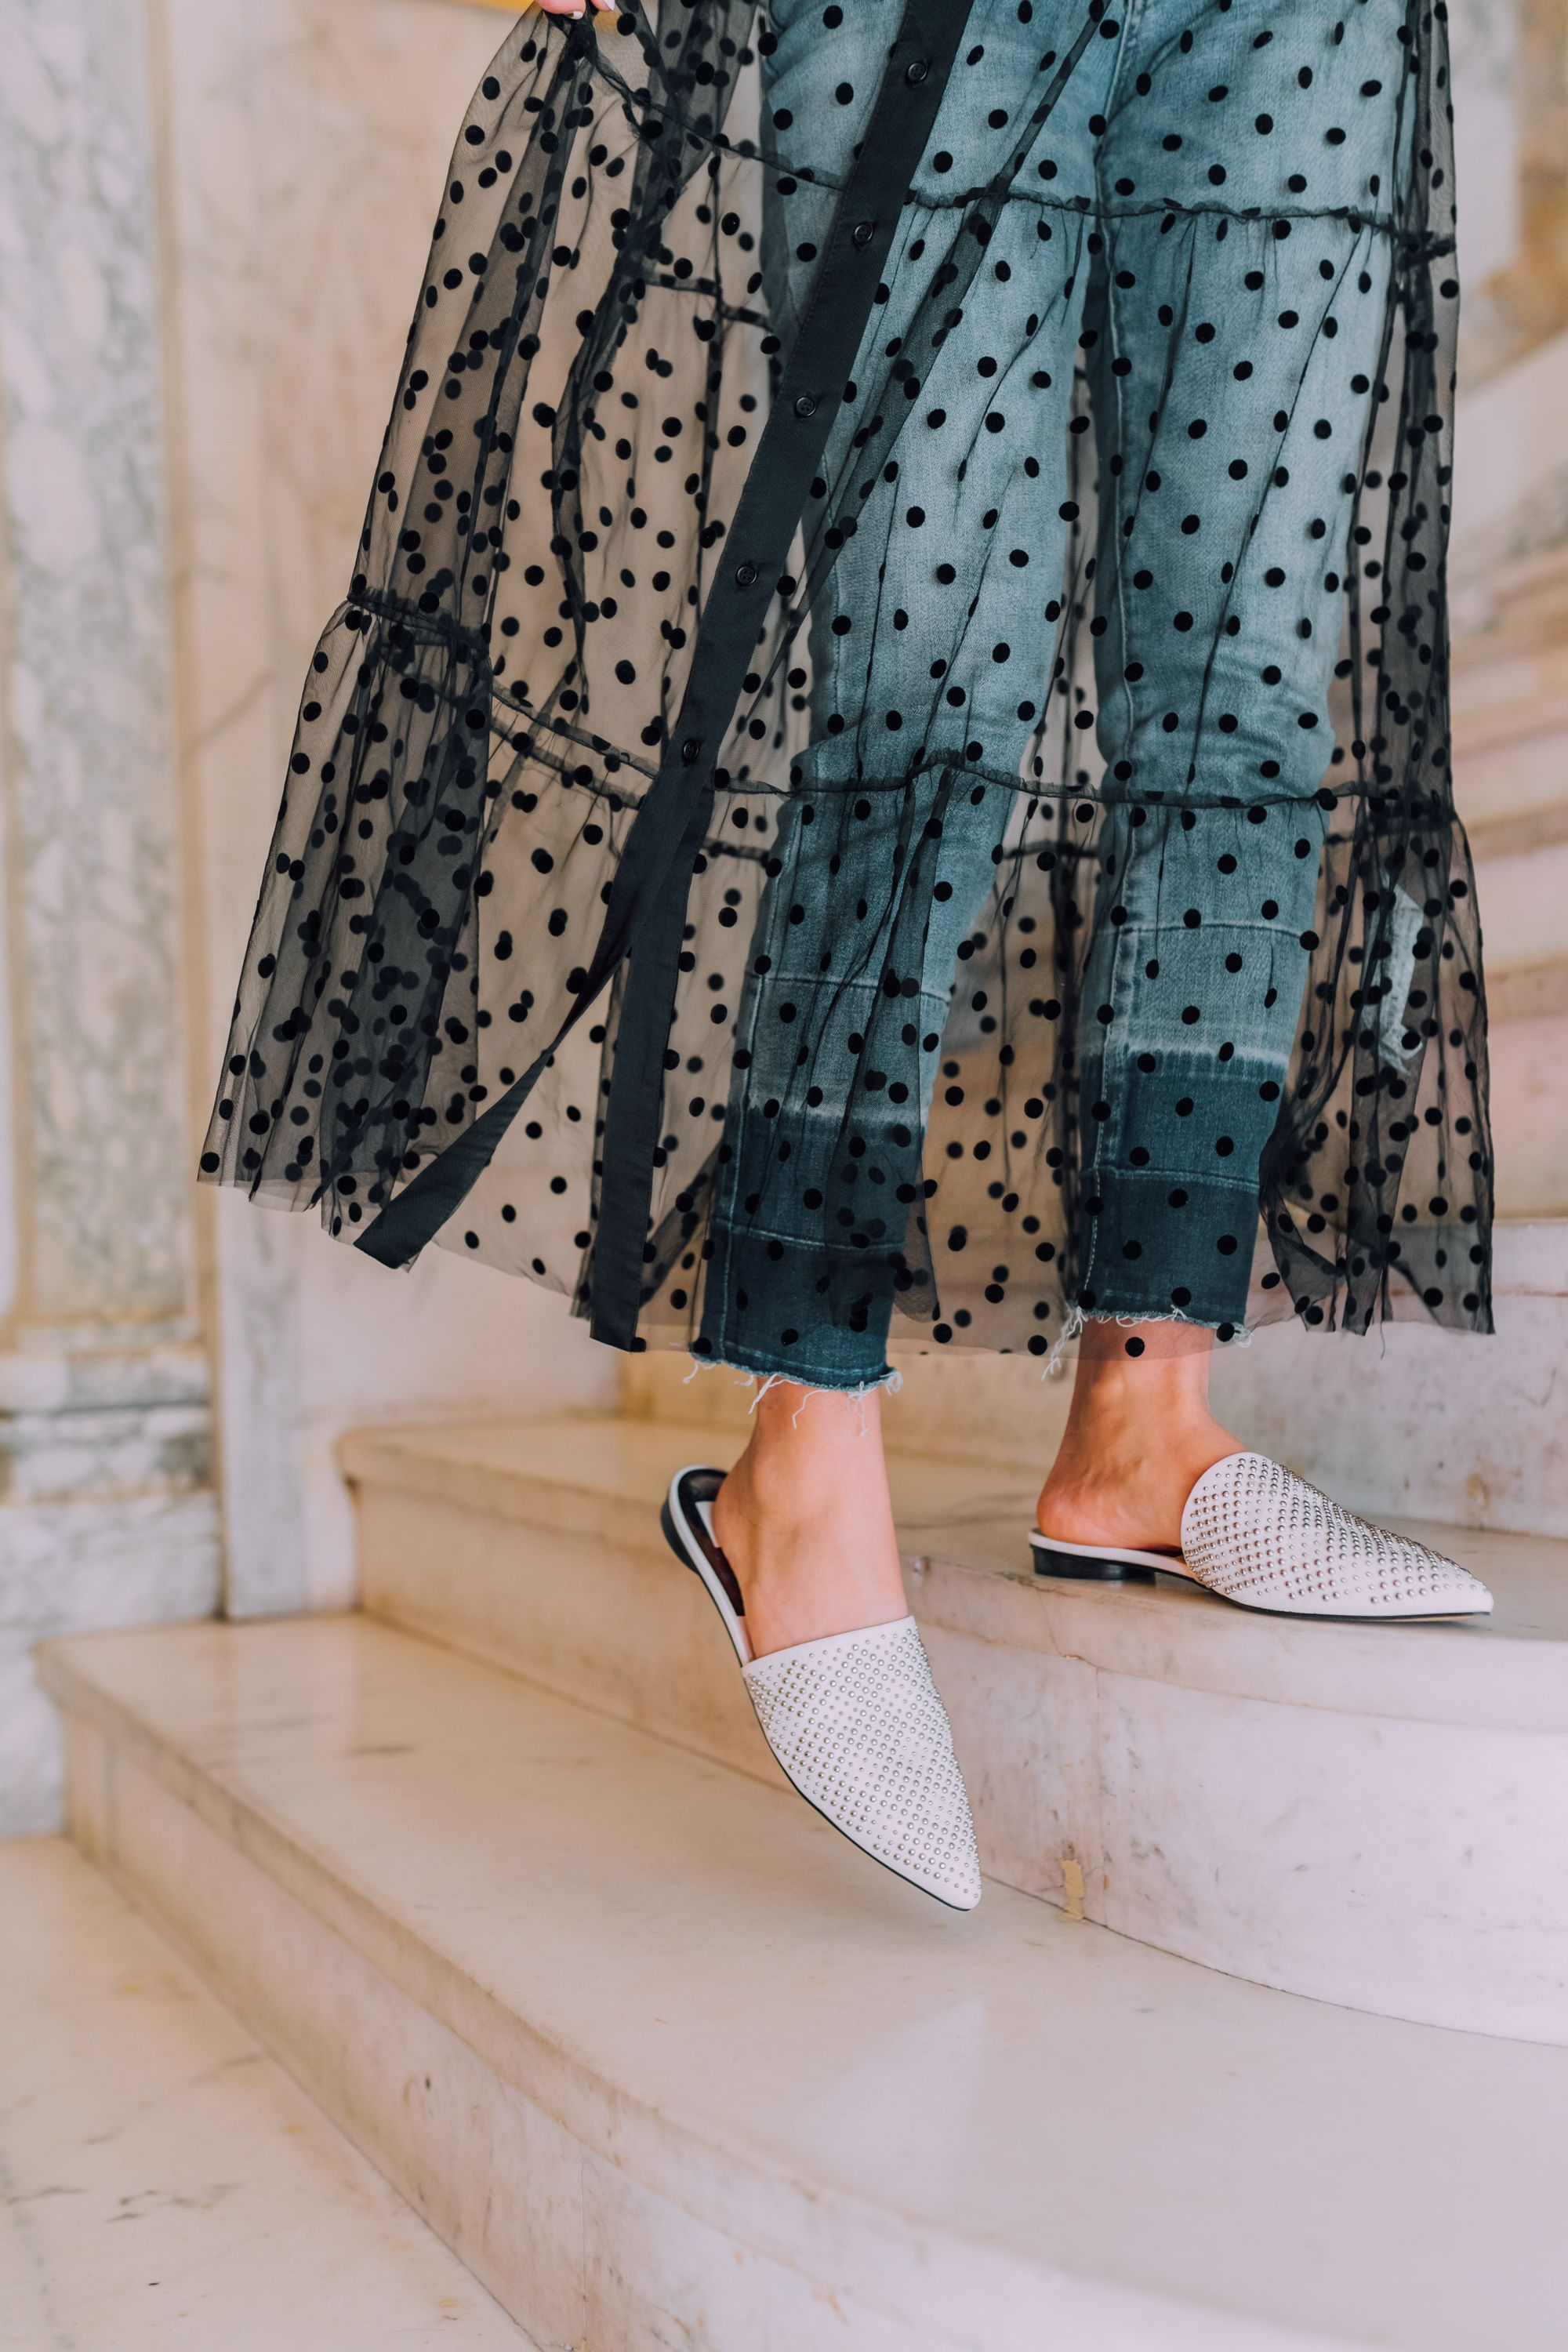 908bf2077c DSW Shoes Spring | Dolce Vita White Leather Studded Ezra Mule | NYC Street  Style Spring